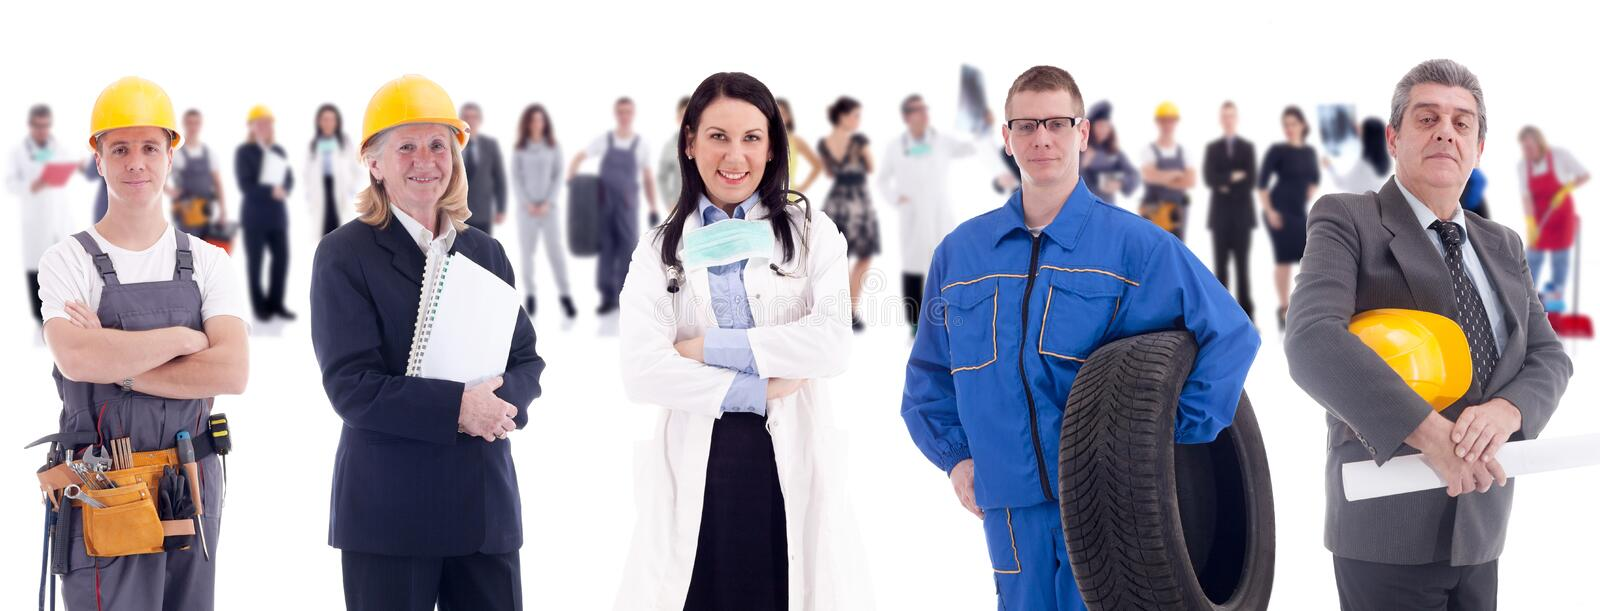 Group of successes people stock photography